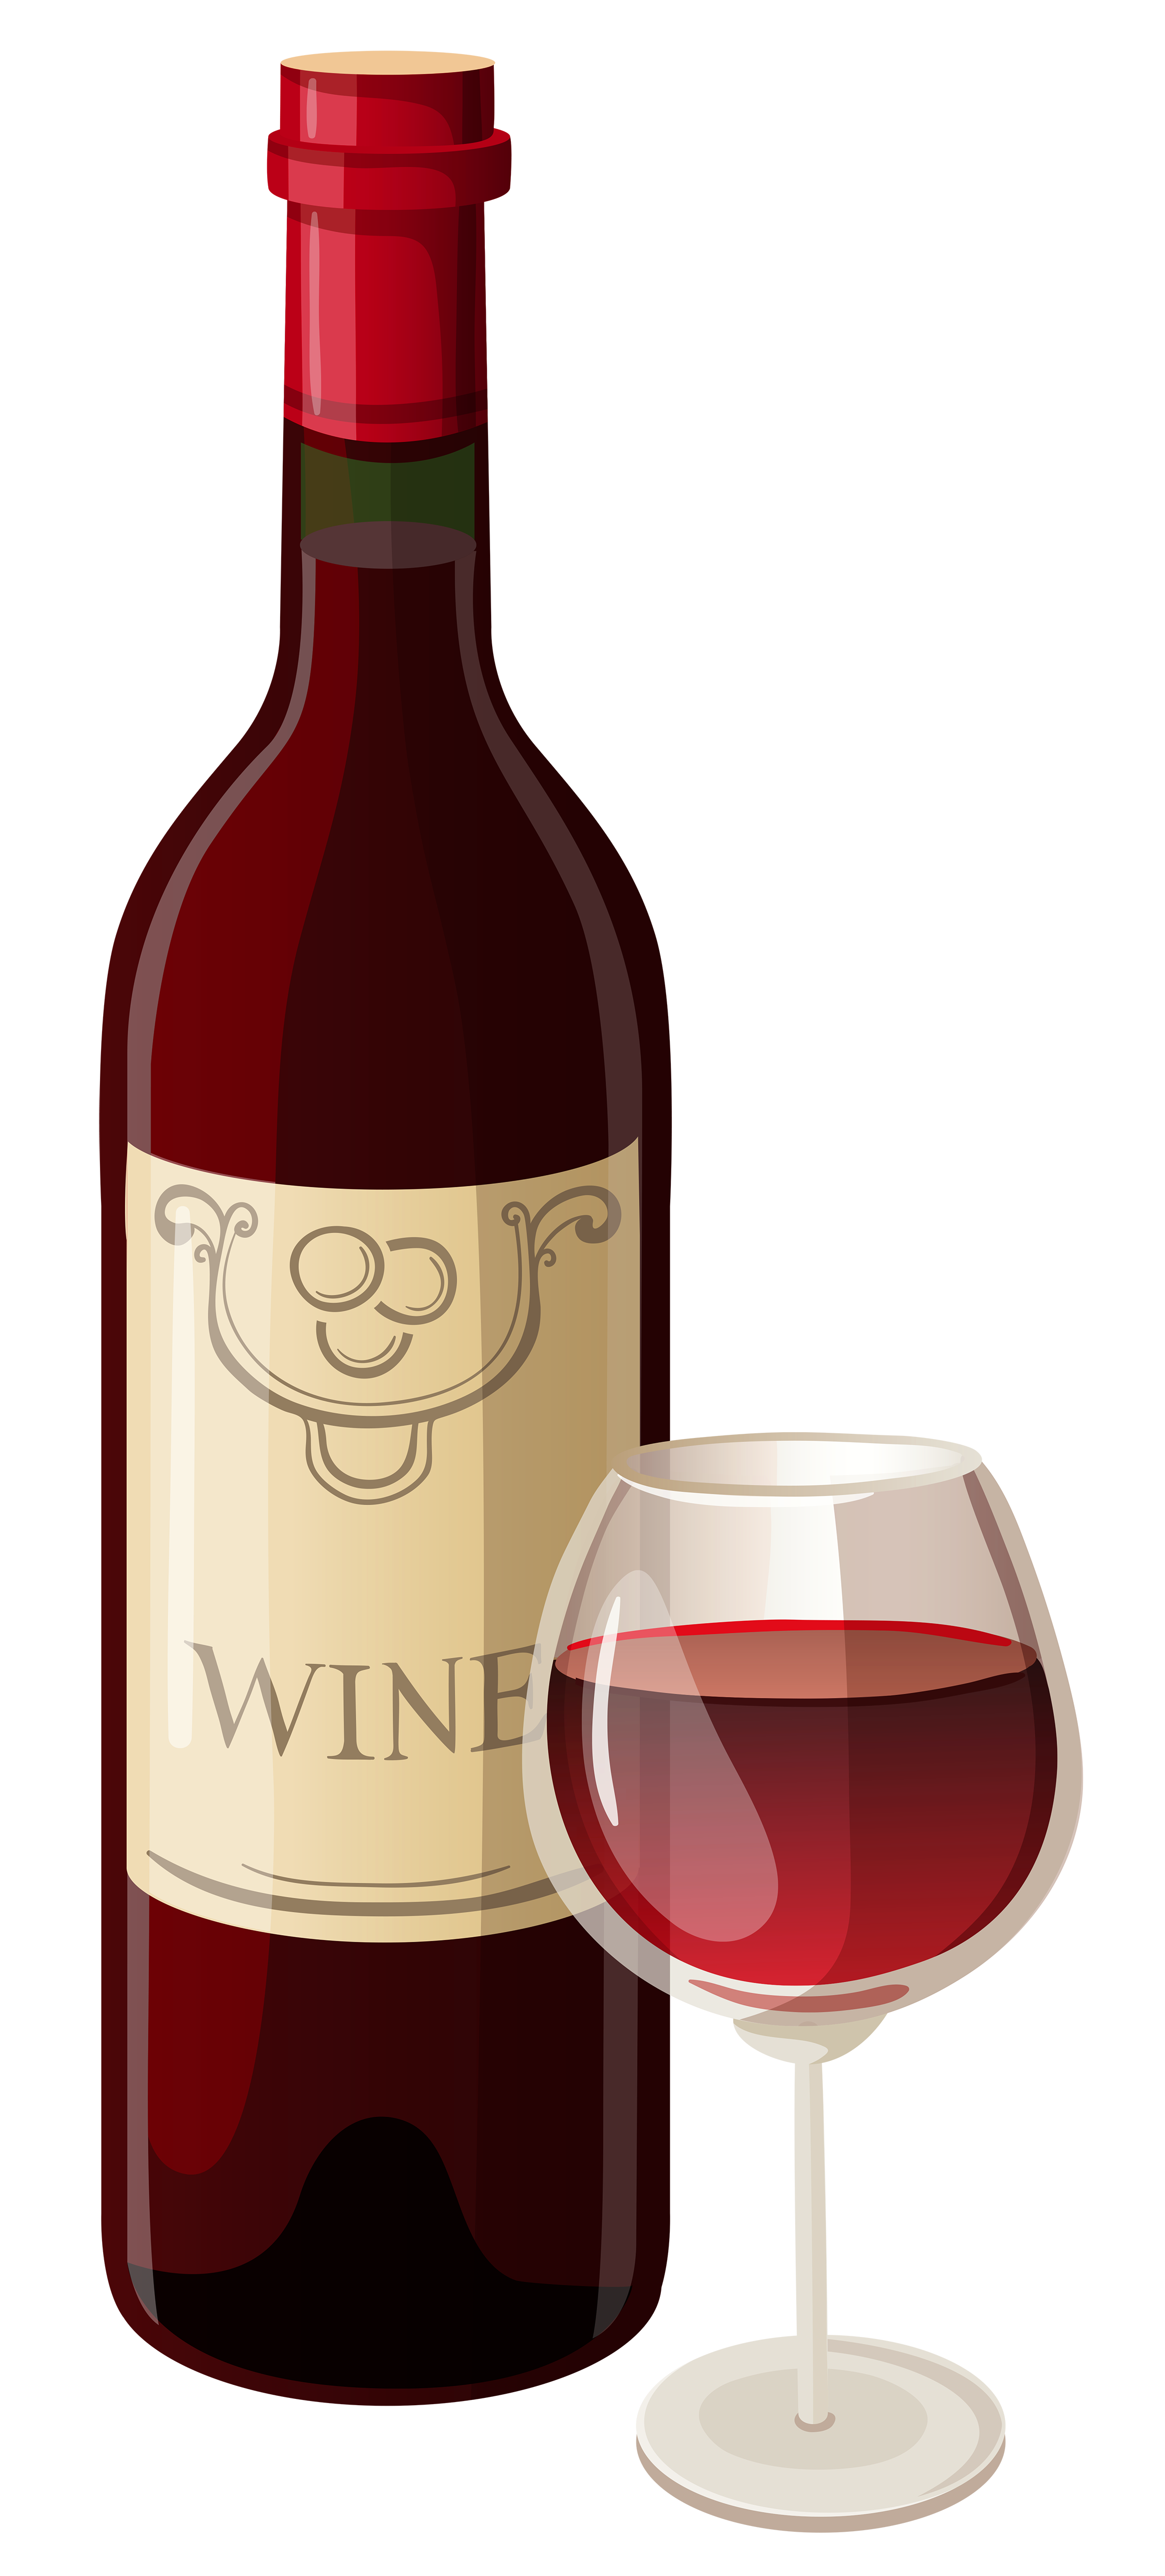 Wine Bottle And Glass Vector Clipart Wine Bottle Drawing Wine Glass Images Bottle Drawing